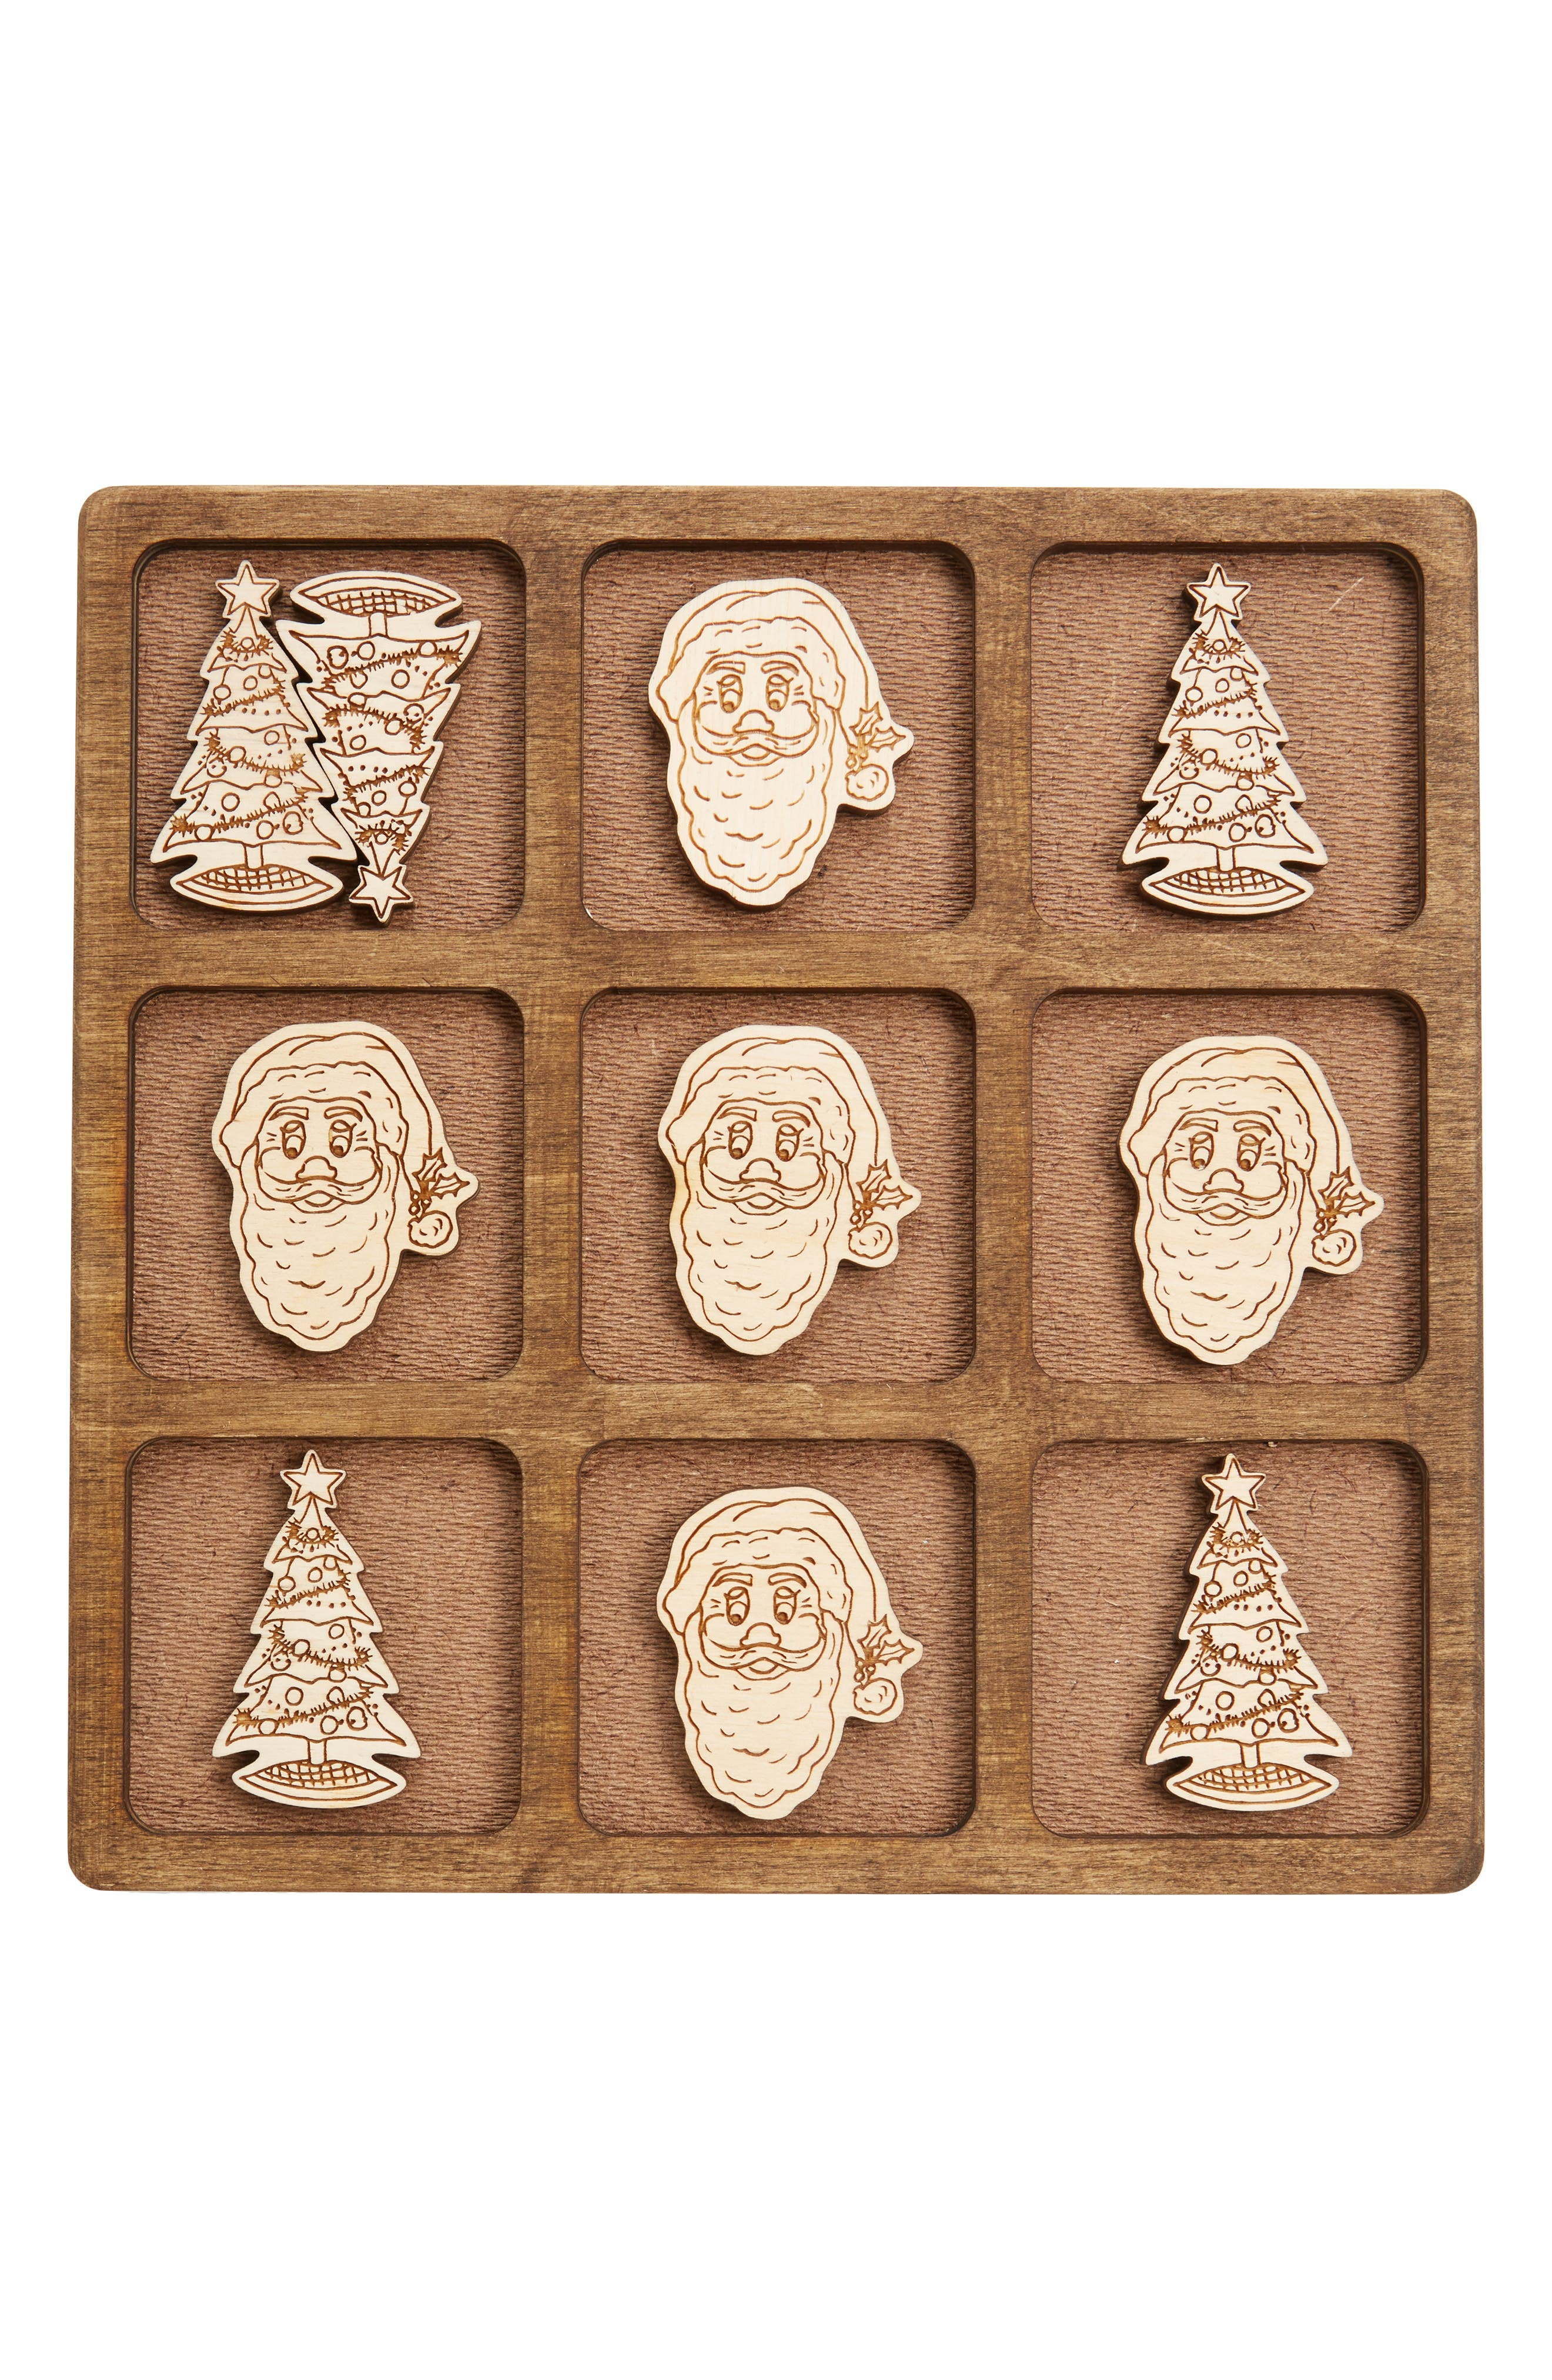 This & That Etc. Toys 11-Piece Christmas Tic-Tac-Toe Game